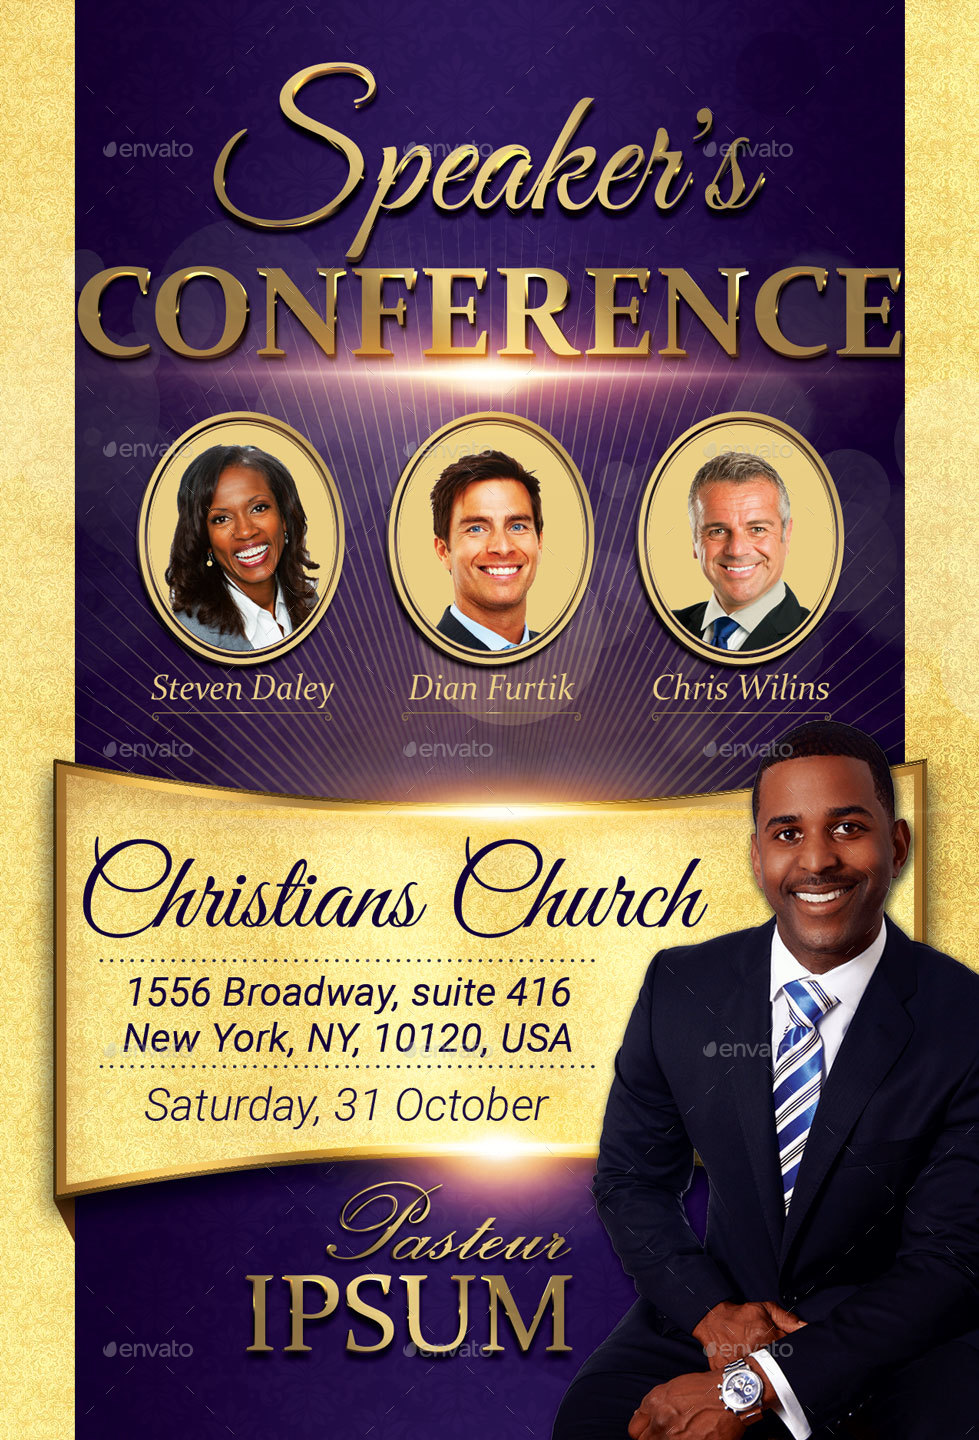 18  church flyer designs  u0026 examples  u2013 psd  ai  word  eps